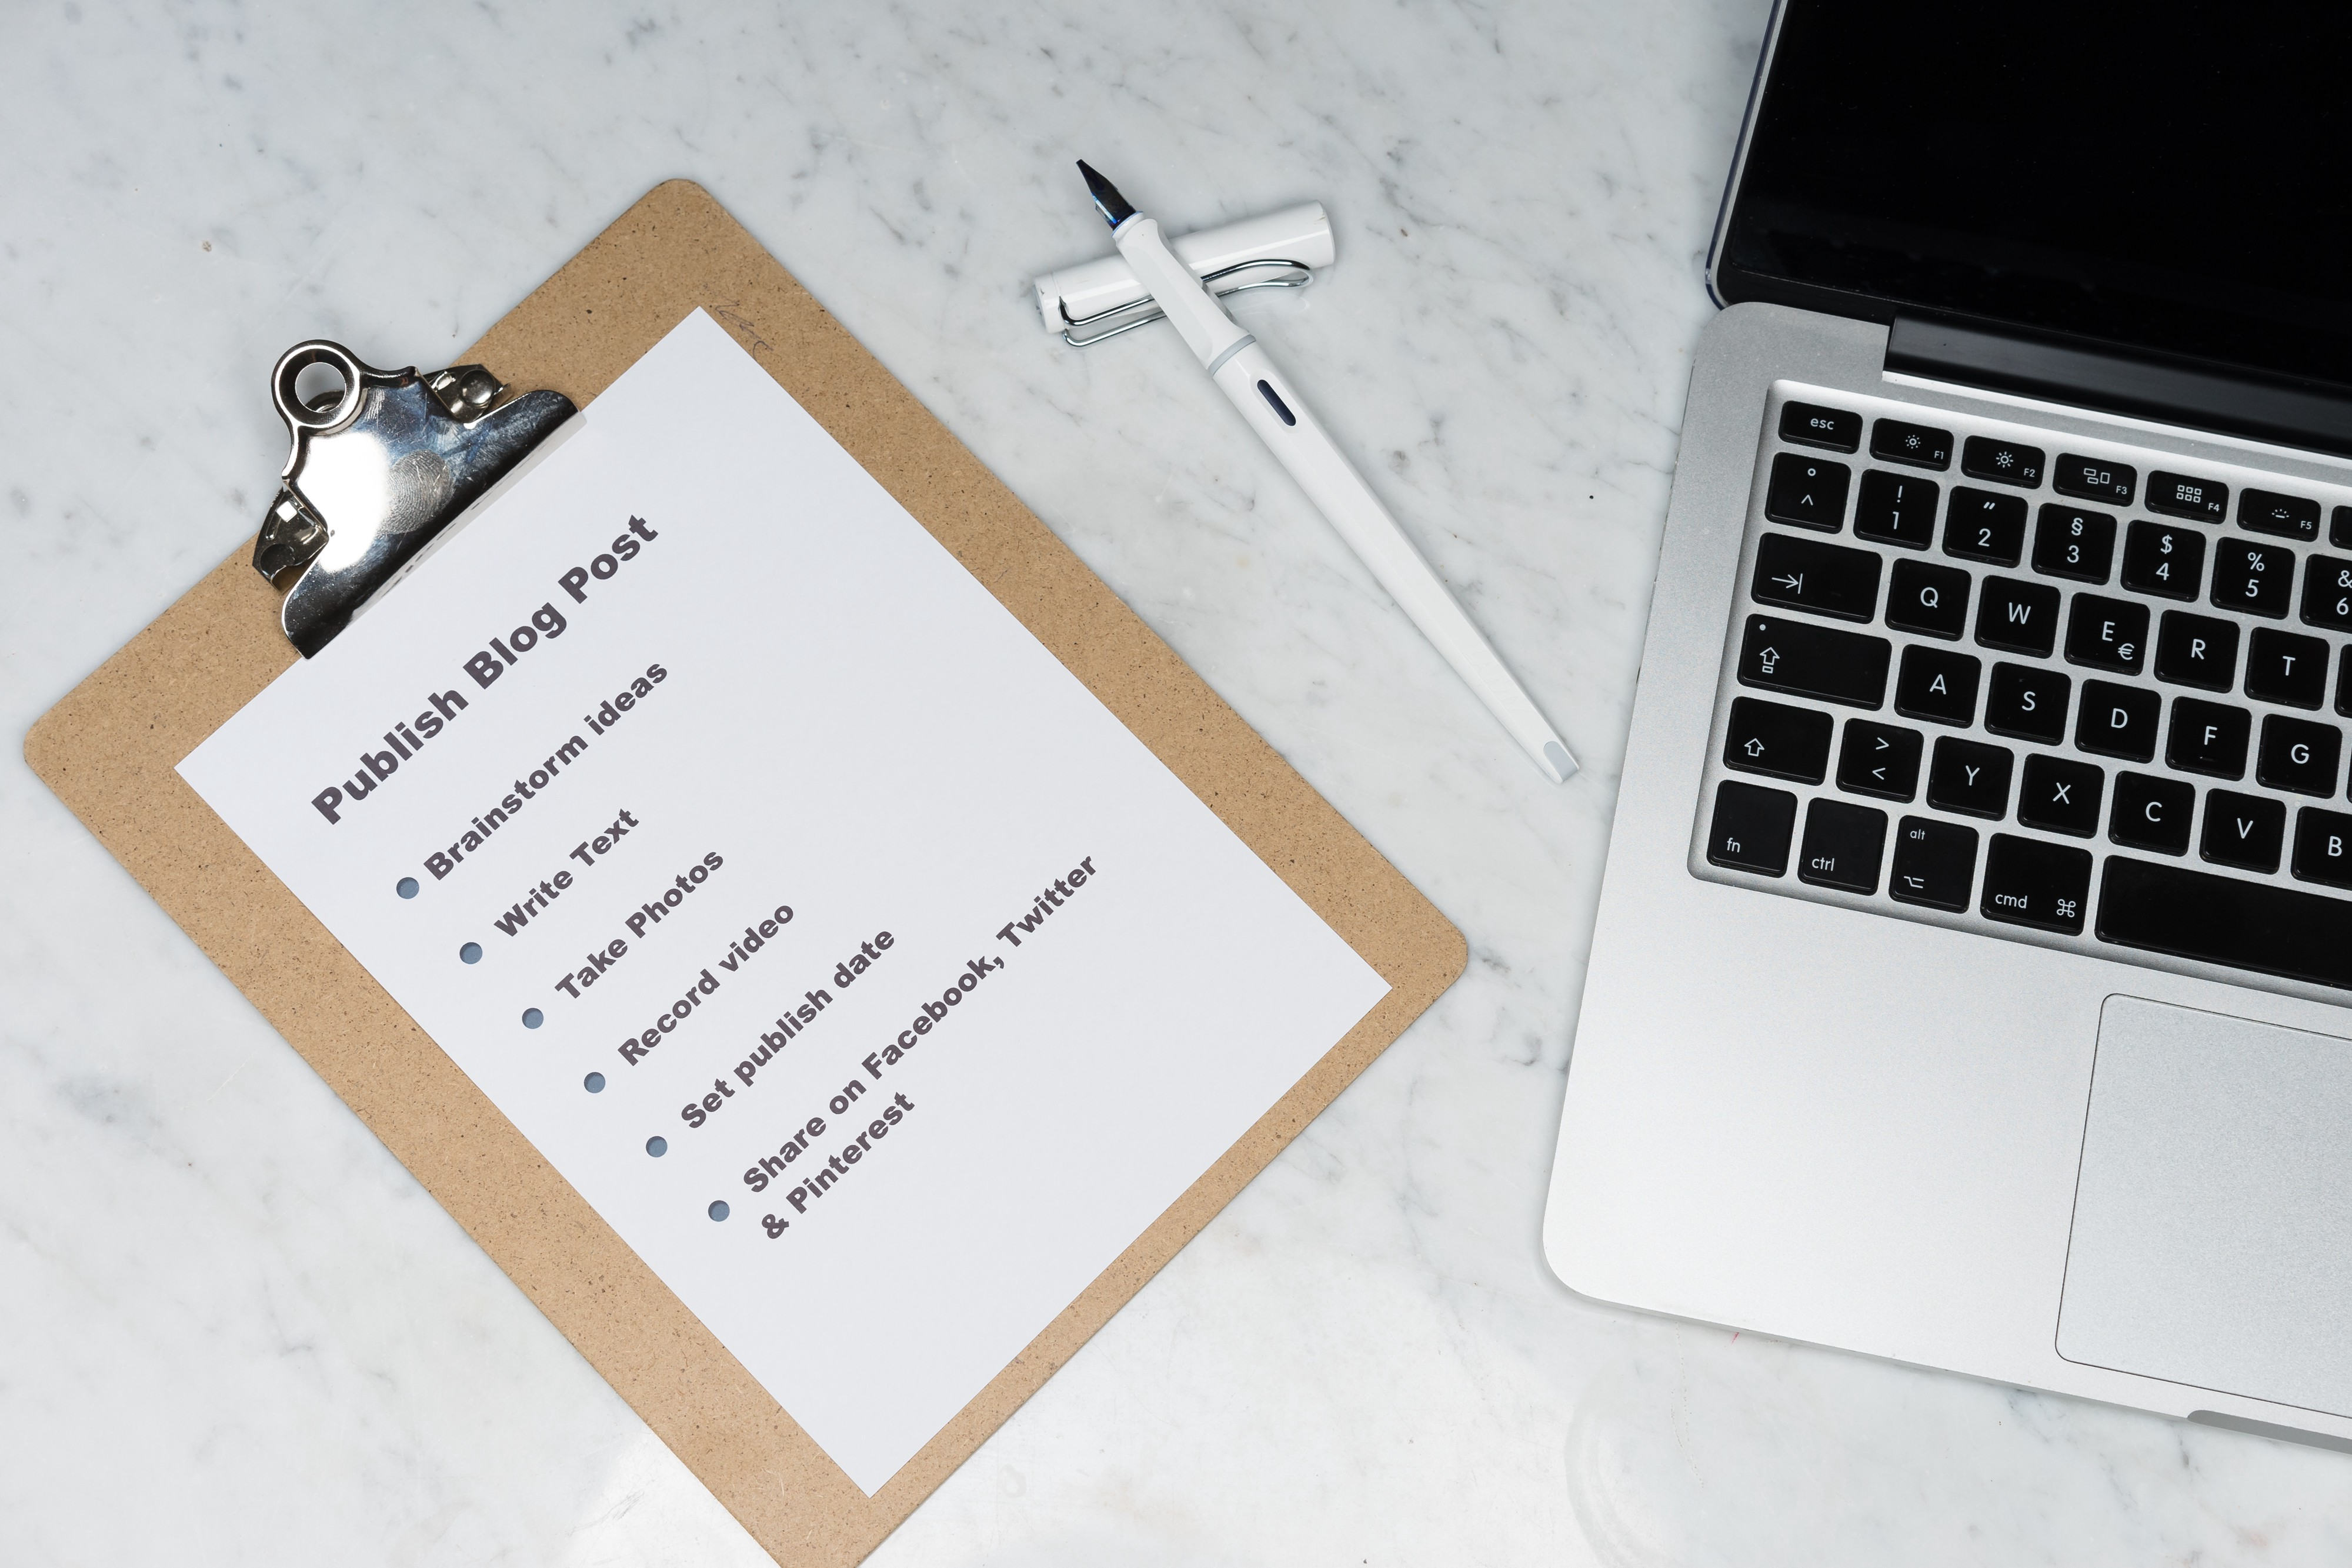 Image of a checklist for publishing a blog post with a pen and a Macbook